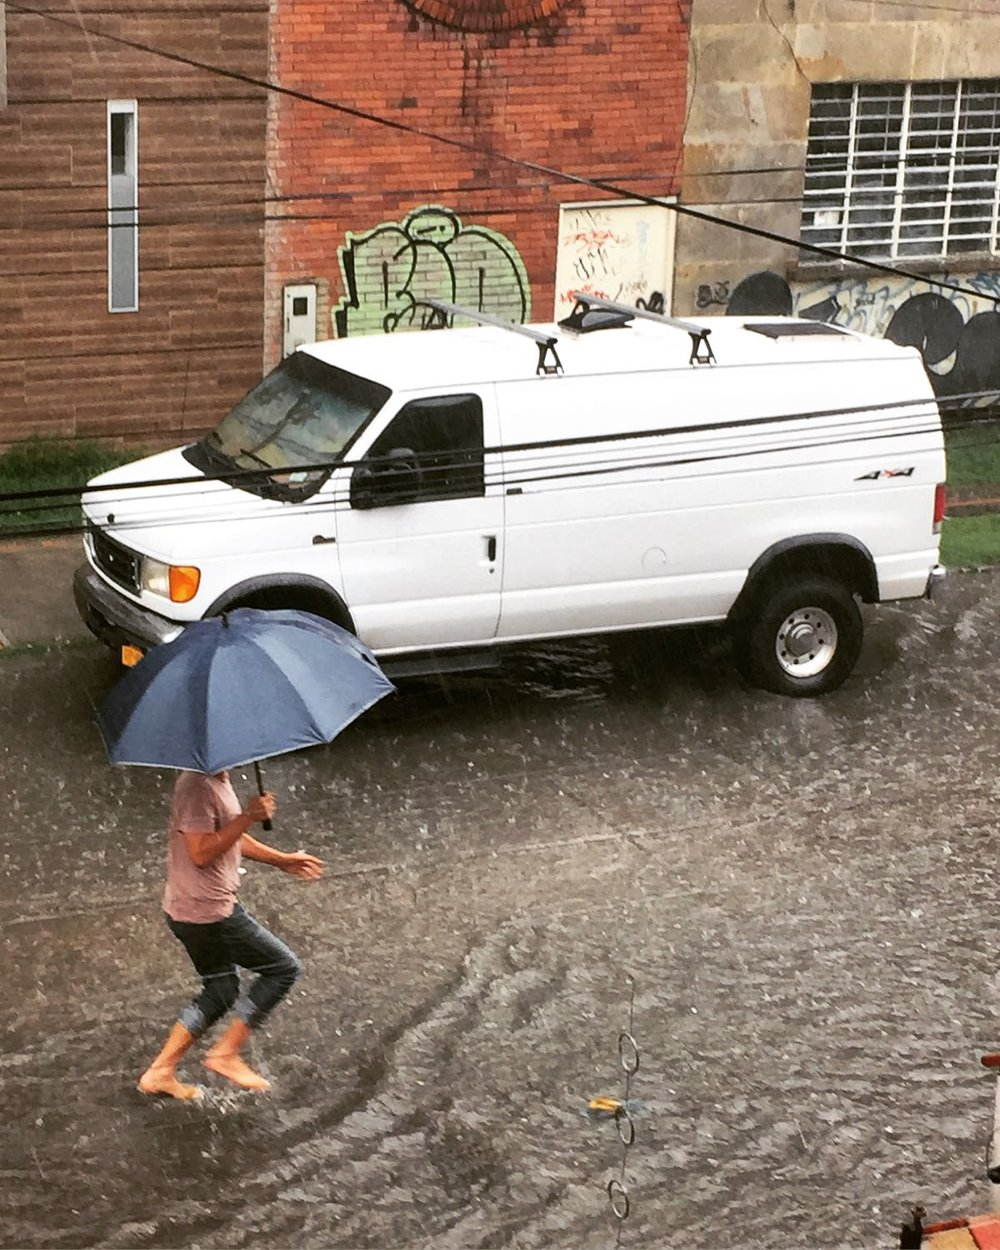 The rain in Bogota is so heavy it could steal your flip flops if you aren't careful, that is not a similarity it shares with Lima